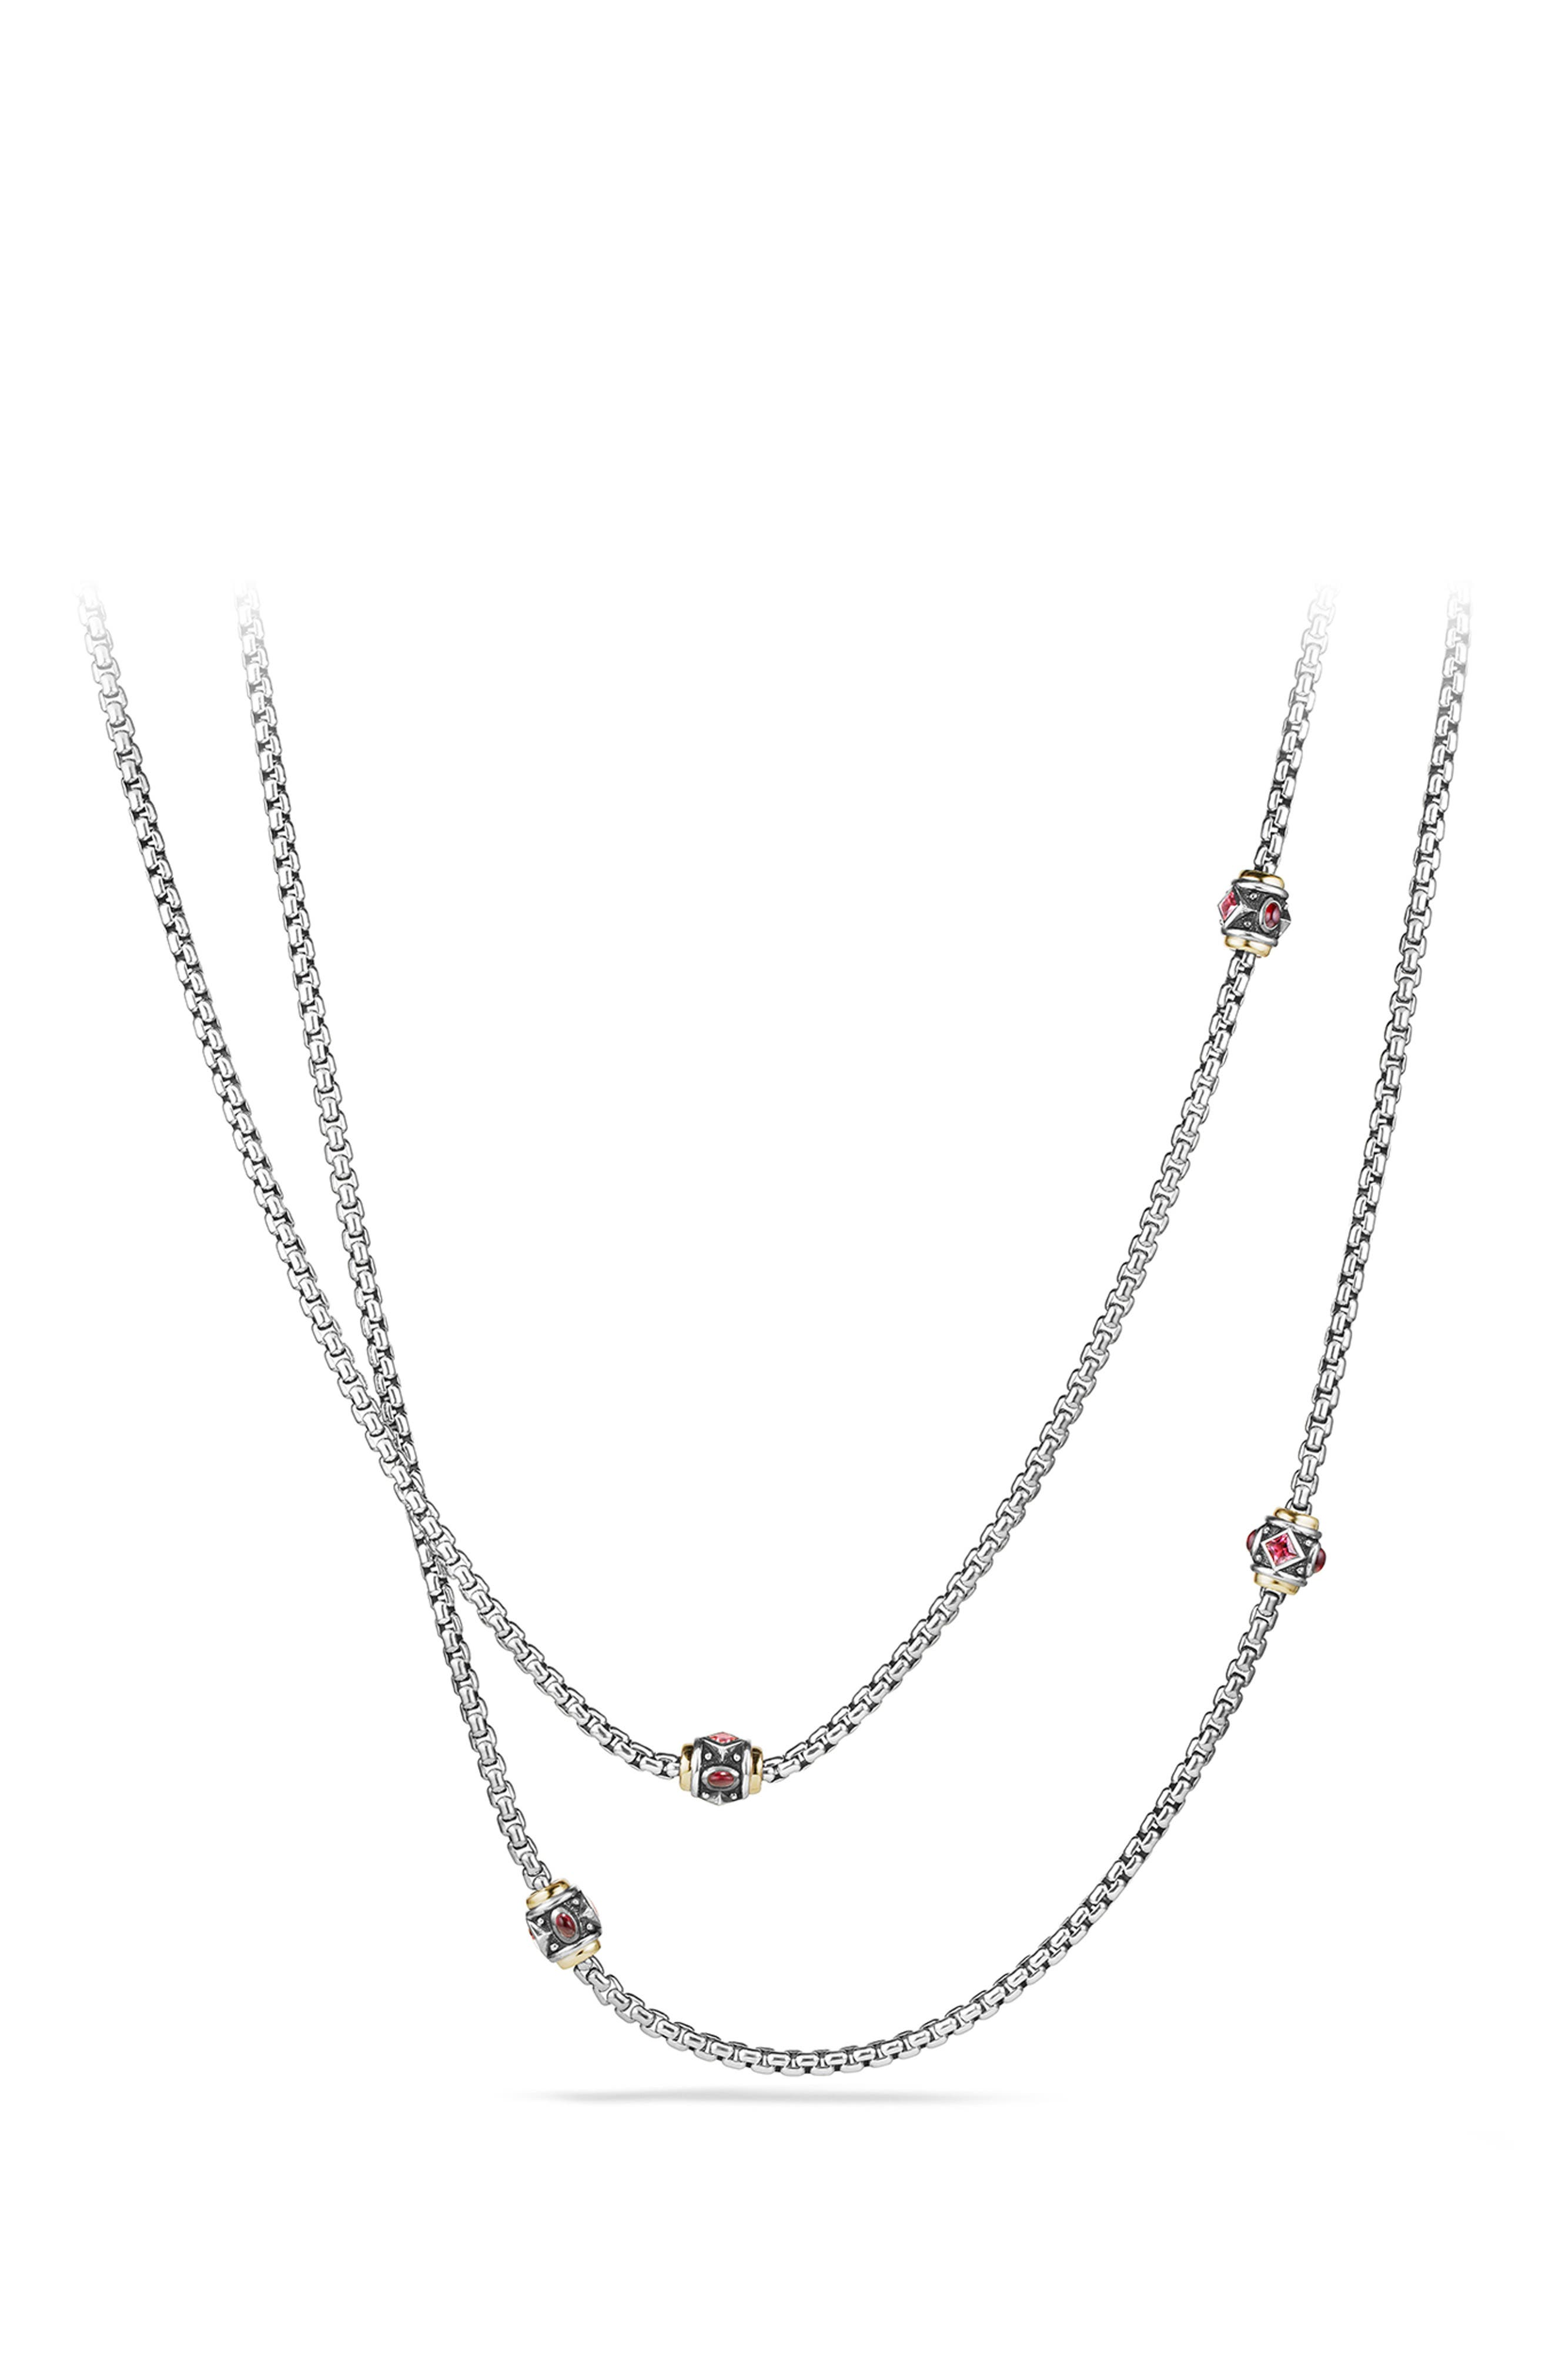 'Renaissance' Necklace with Semiprecious Stone and 18k Gold,                             Alternate thumbnail 3, color,                             650